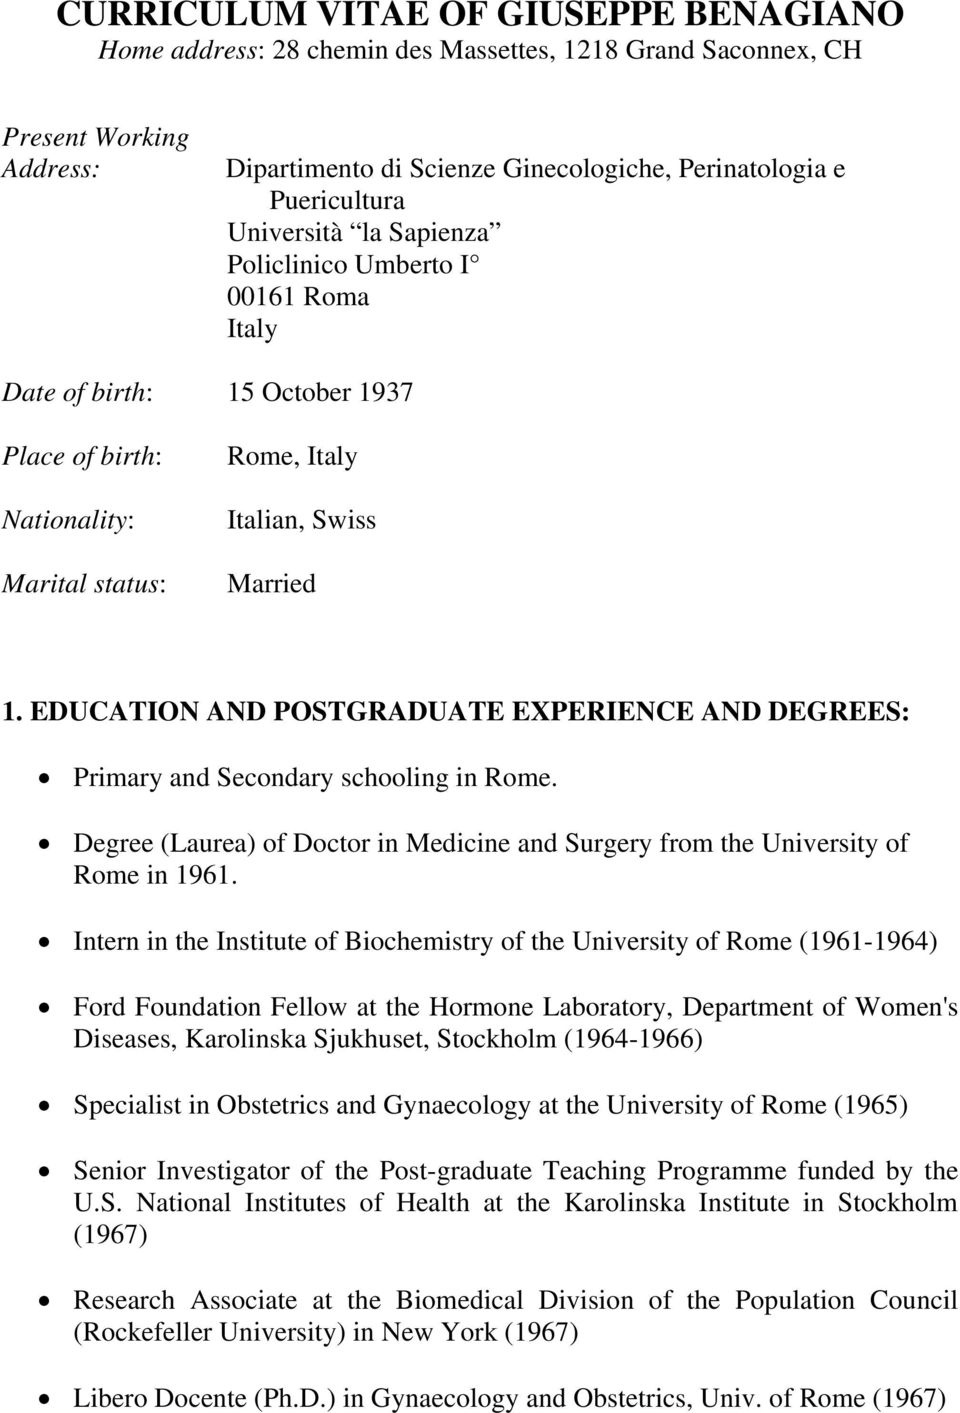 EDUCATION AND POSTGRADUATE EXPERIENCE AND DEGREES: Primary and Secondary schooling in Rome. Degree (Laurea) of Doctor in Medicine and Surgery from the University of Rome in 1961.